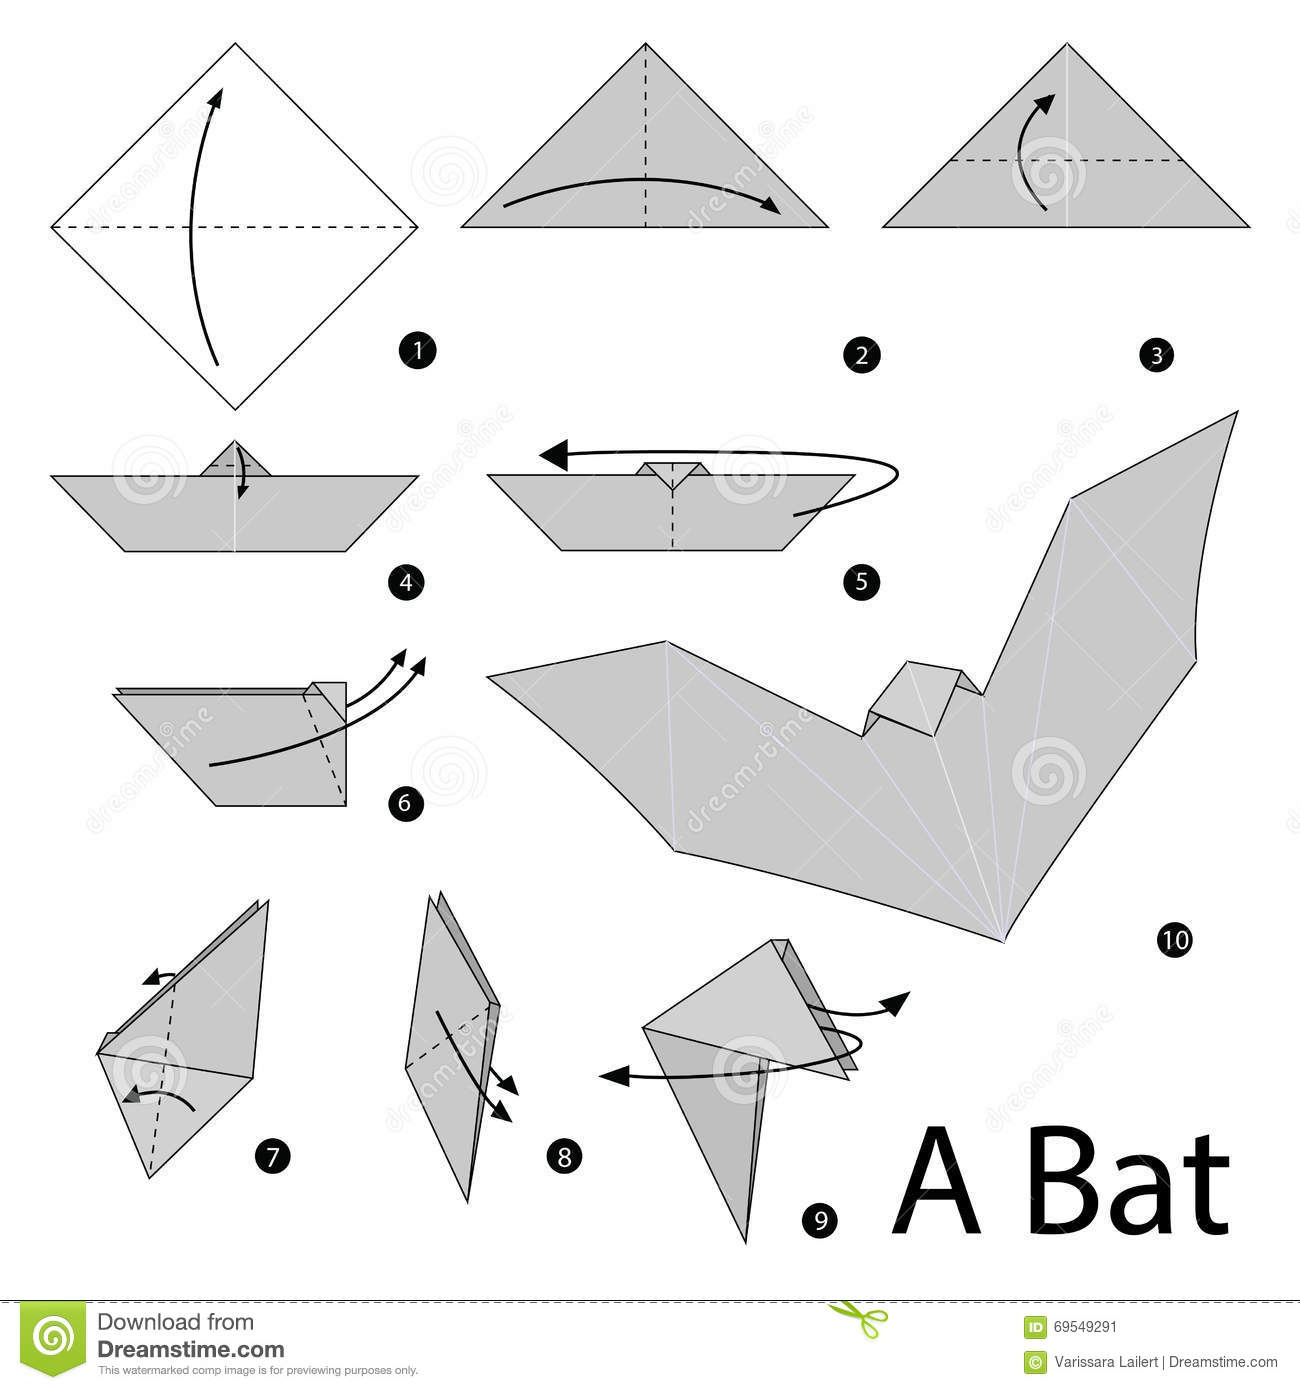 How To Make A Origami Spider Step By